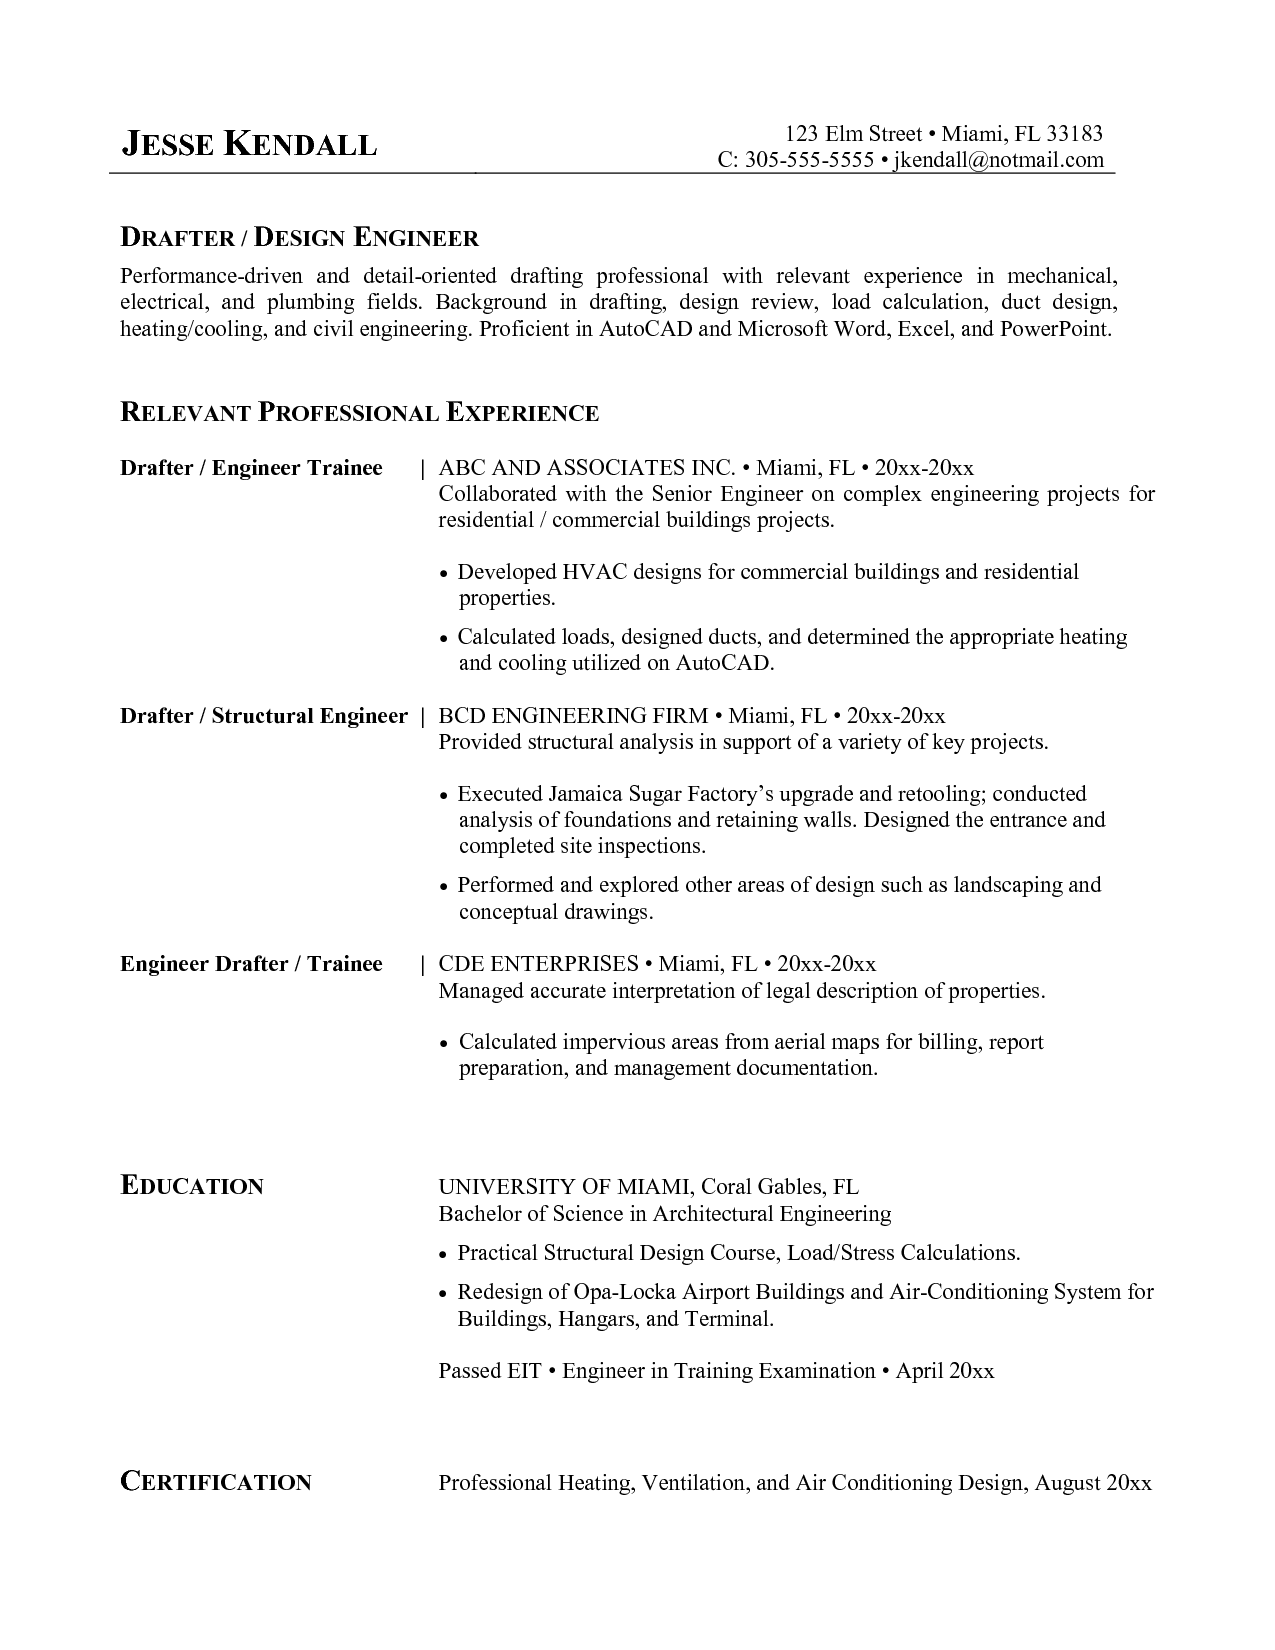 Resume Objective Great Hvac Resume Samplehvac Resume Samples Templateshvac